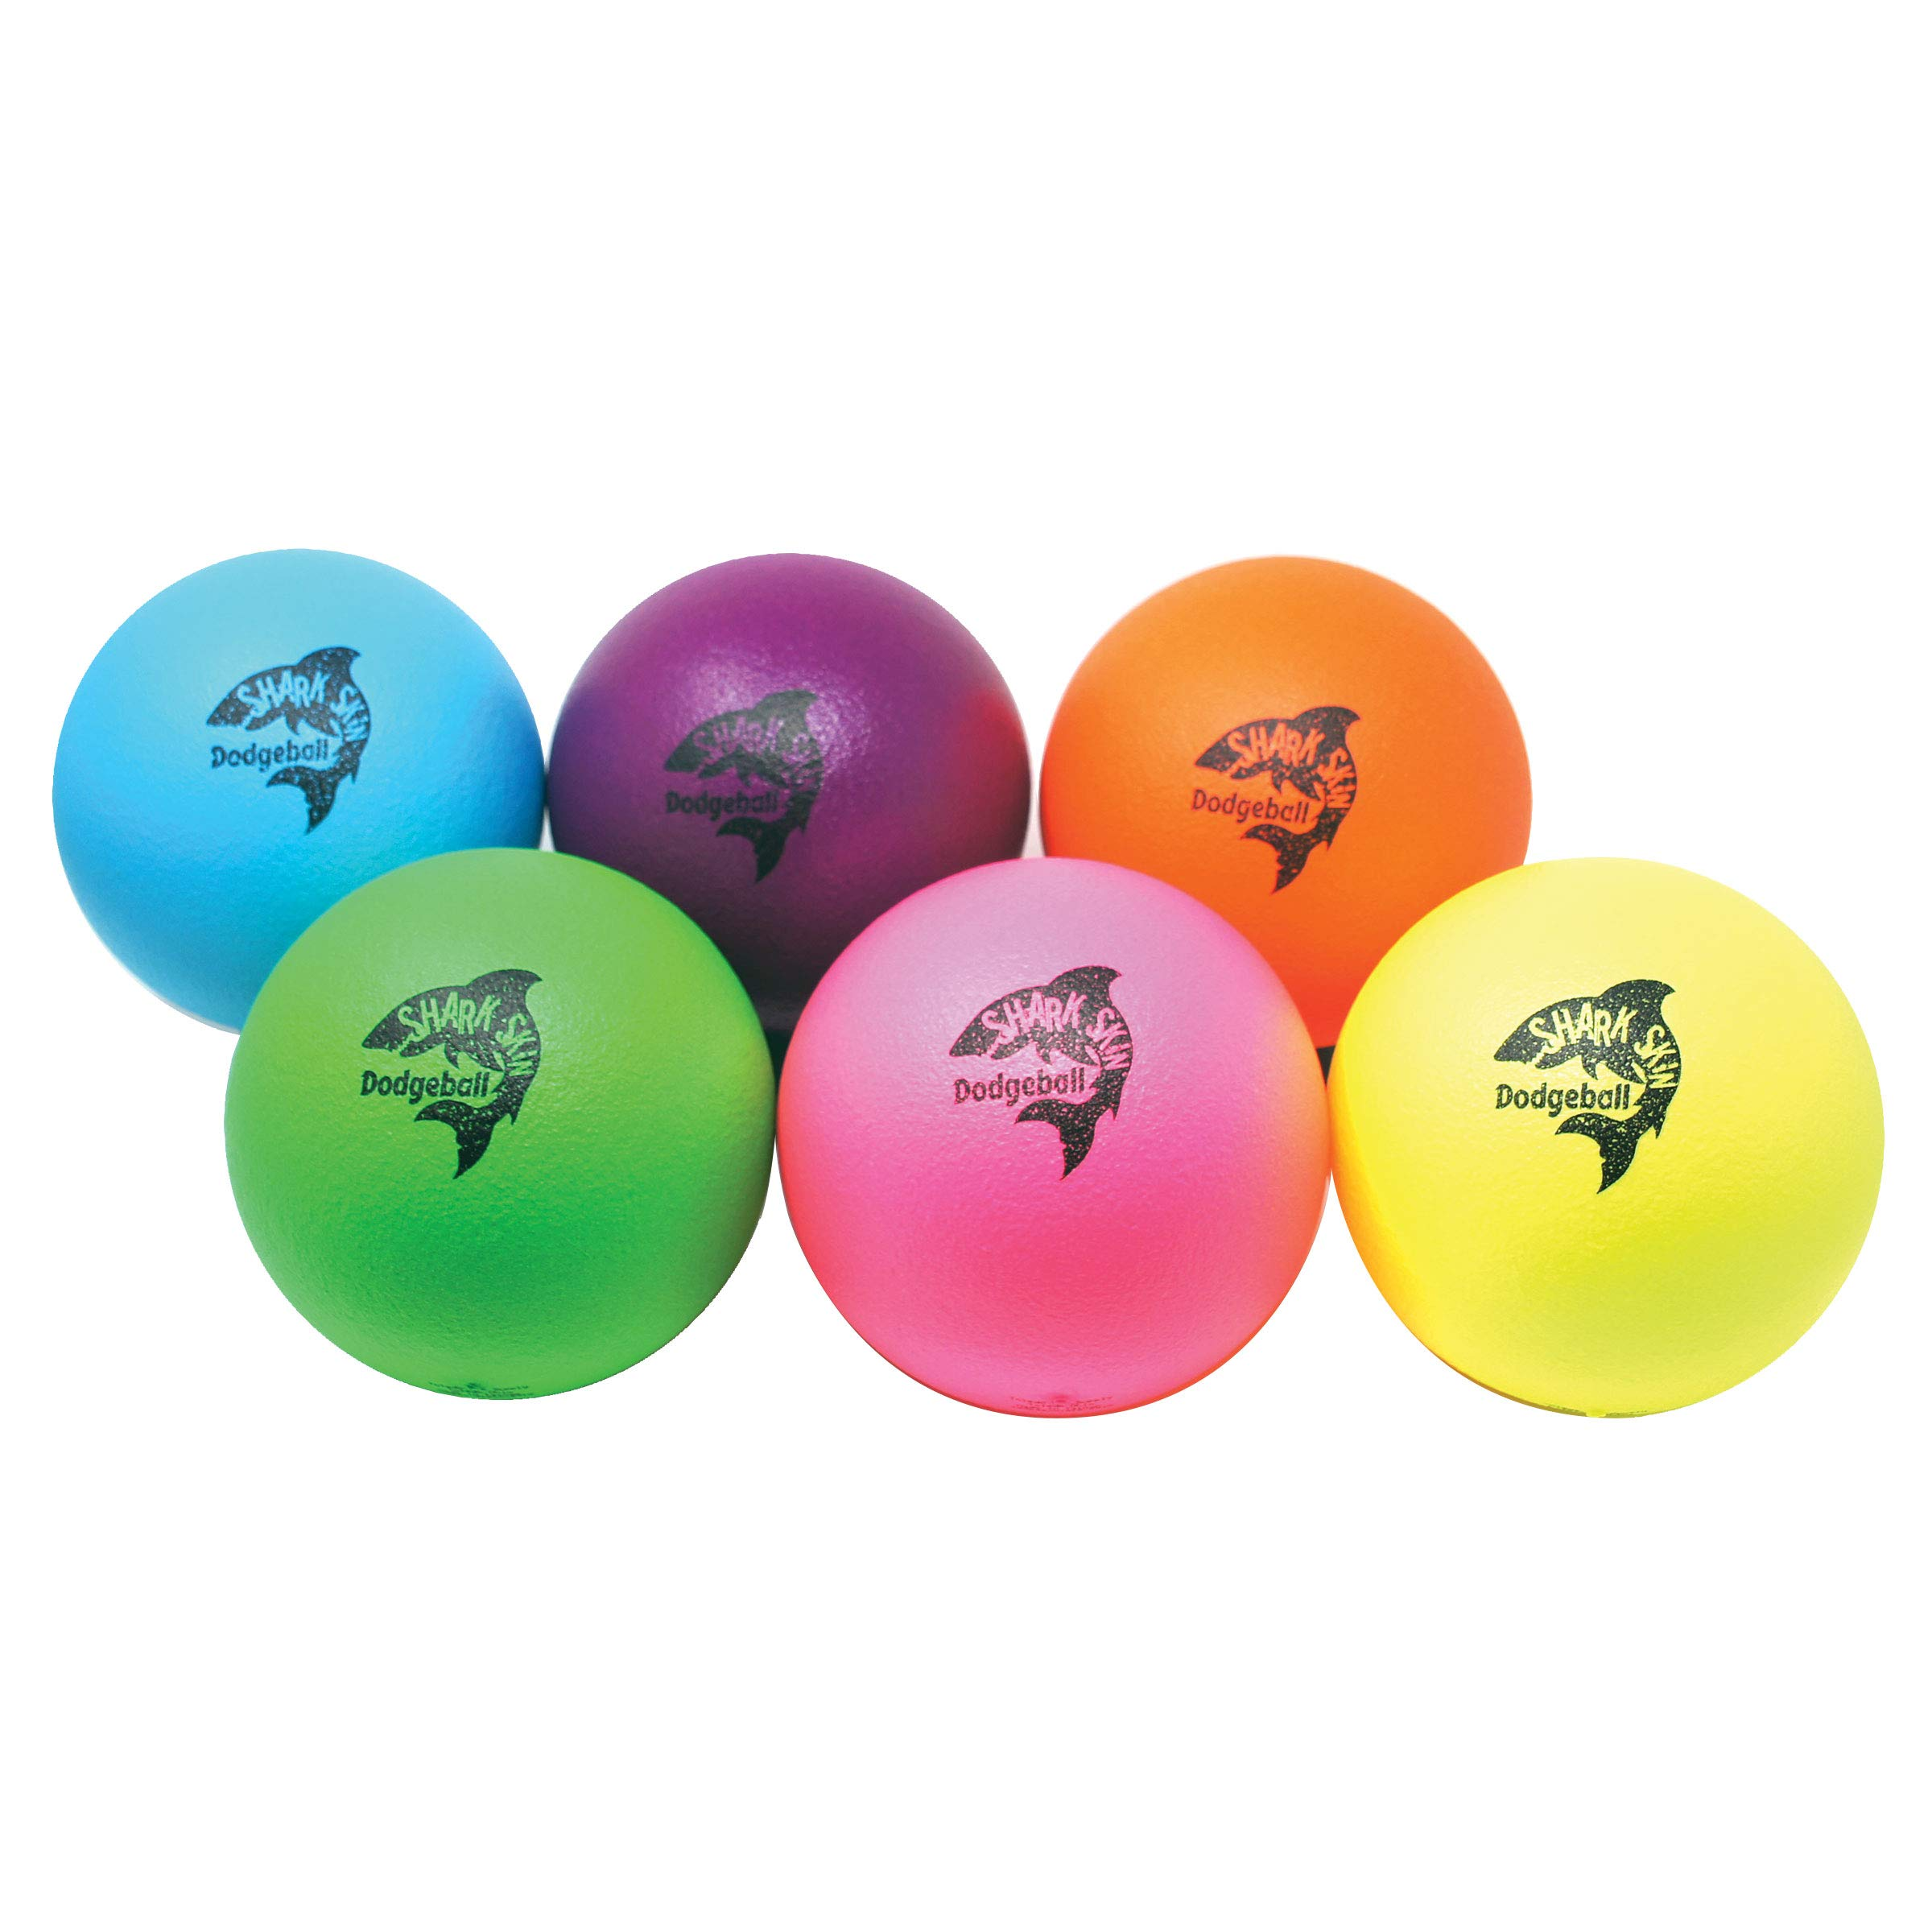 Great Lakes Sports Set of 6 Neon Shark Skin Foam Dodgeballs with Updated Logo by Great Lakes Sports